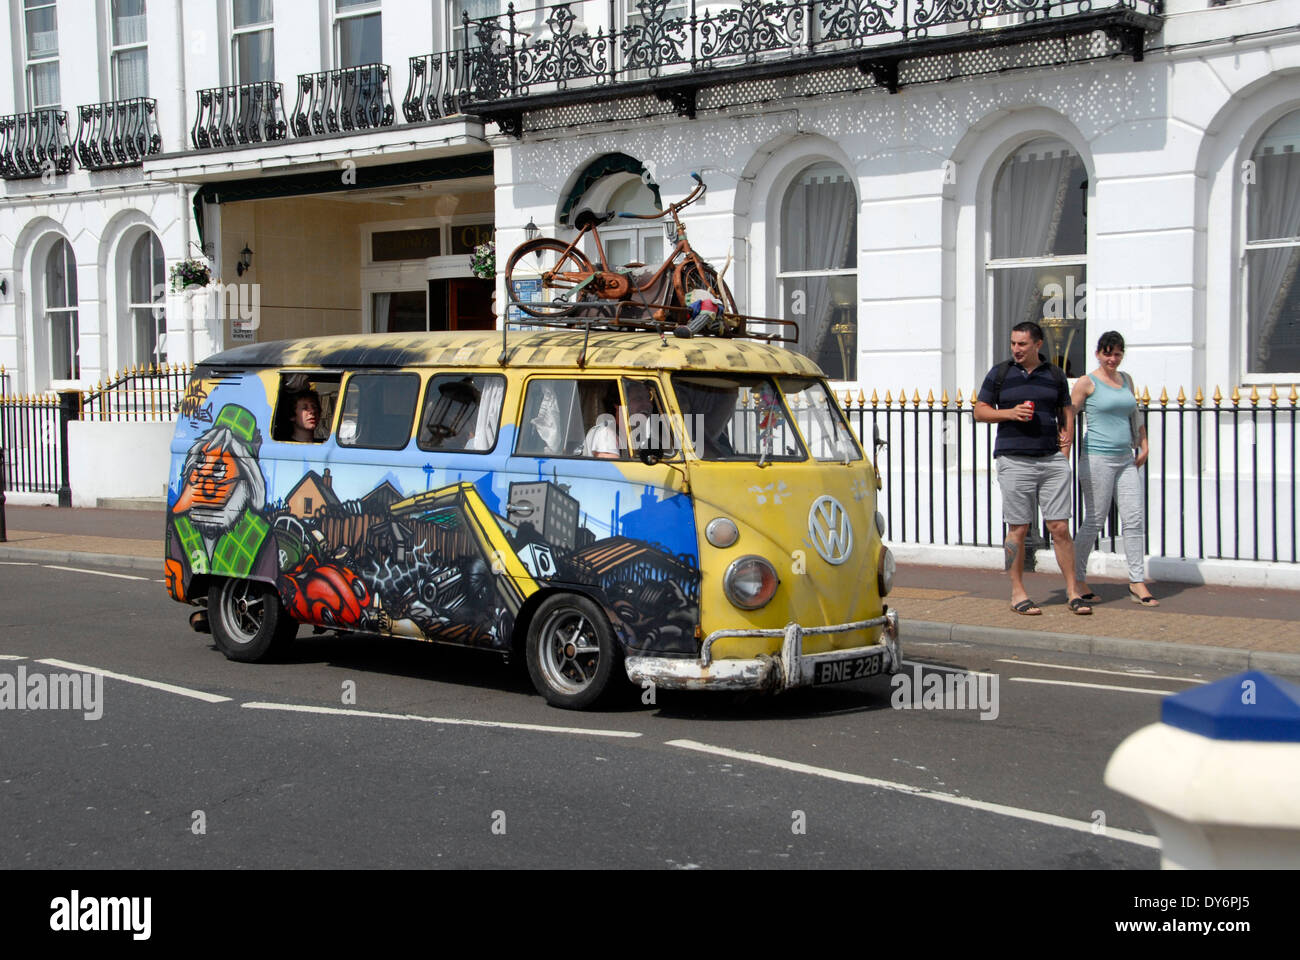 Classic VW camper van with painted exterior on Eastbourne seafront,  Sussex, England UK - Stock Image